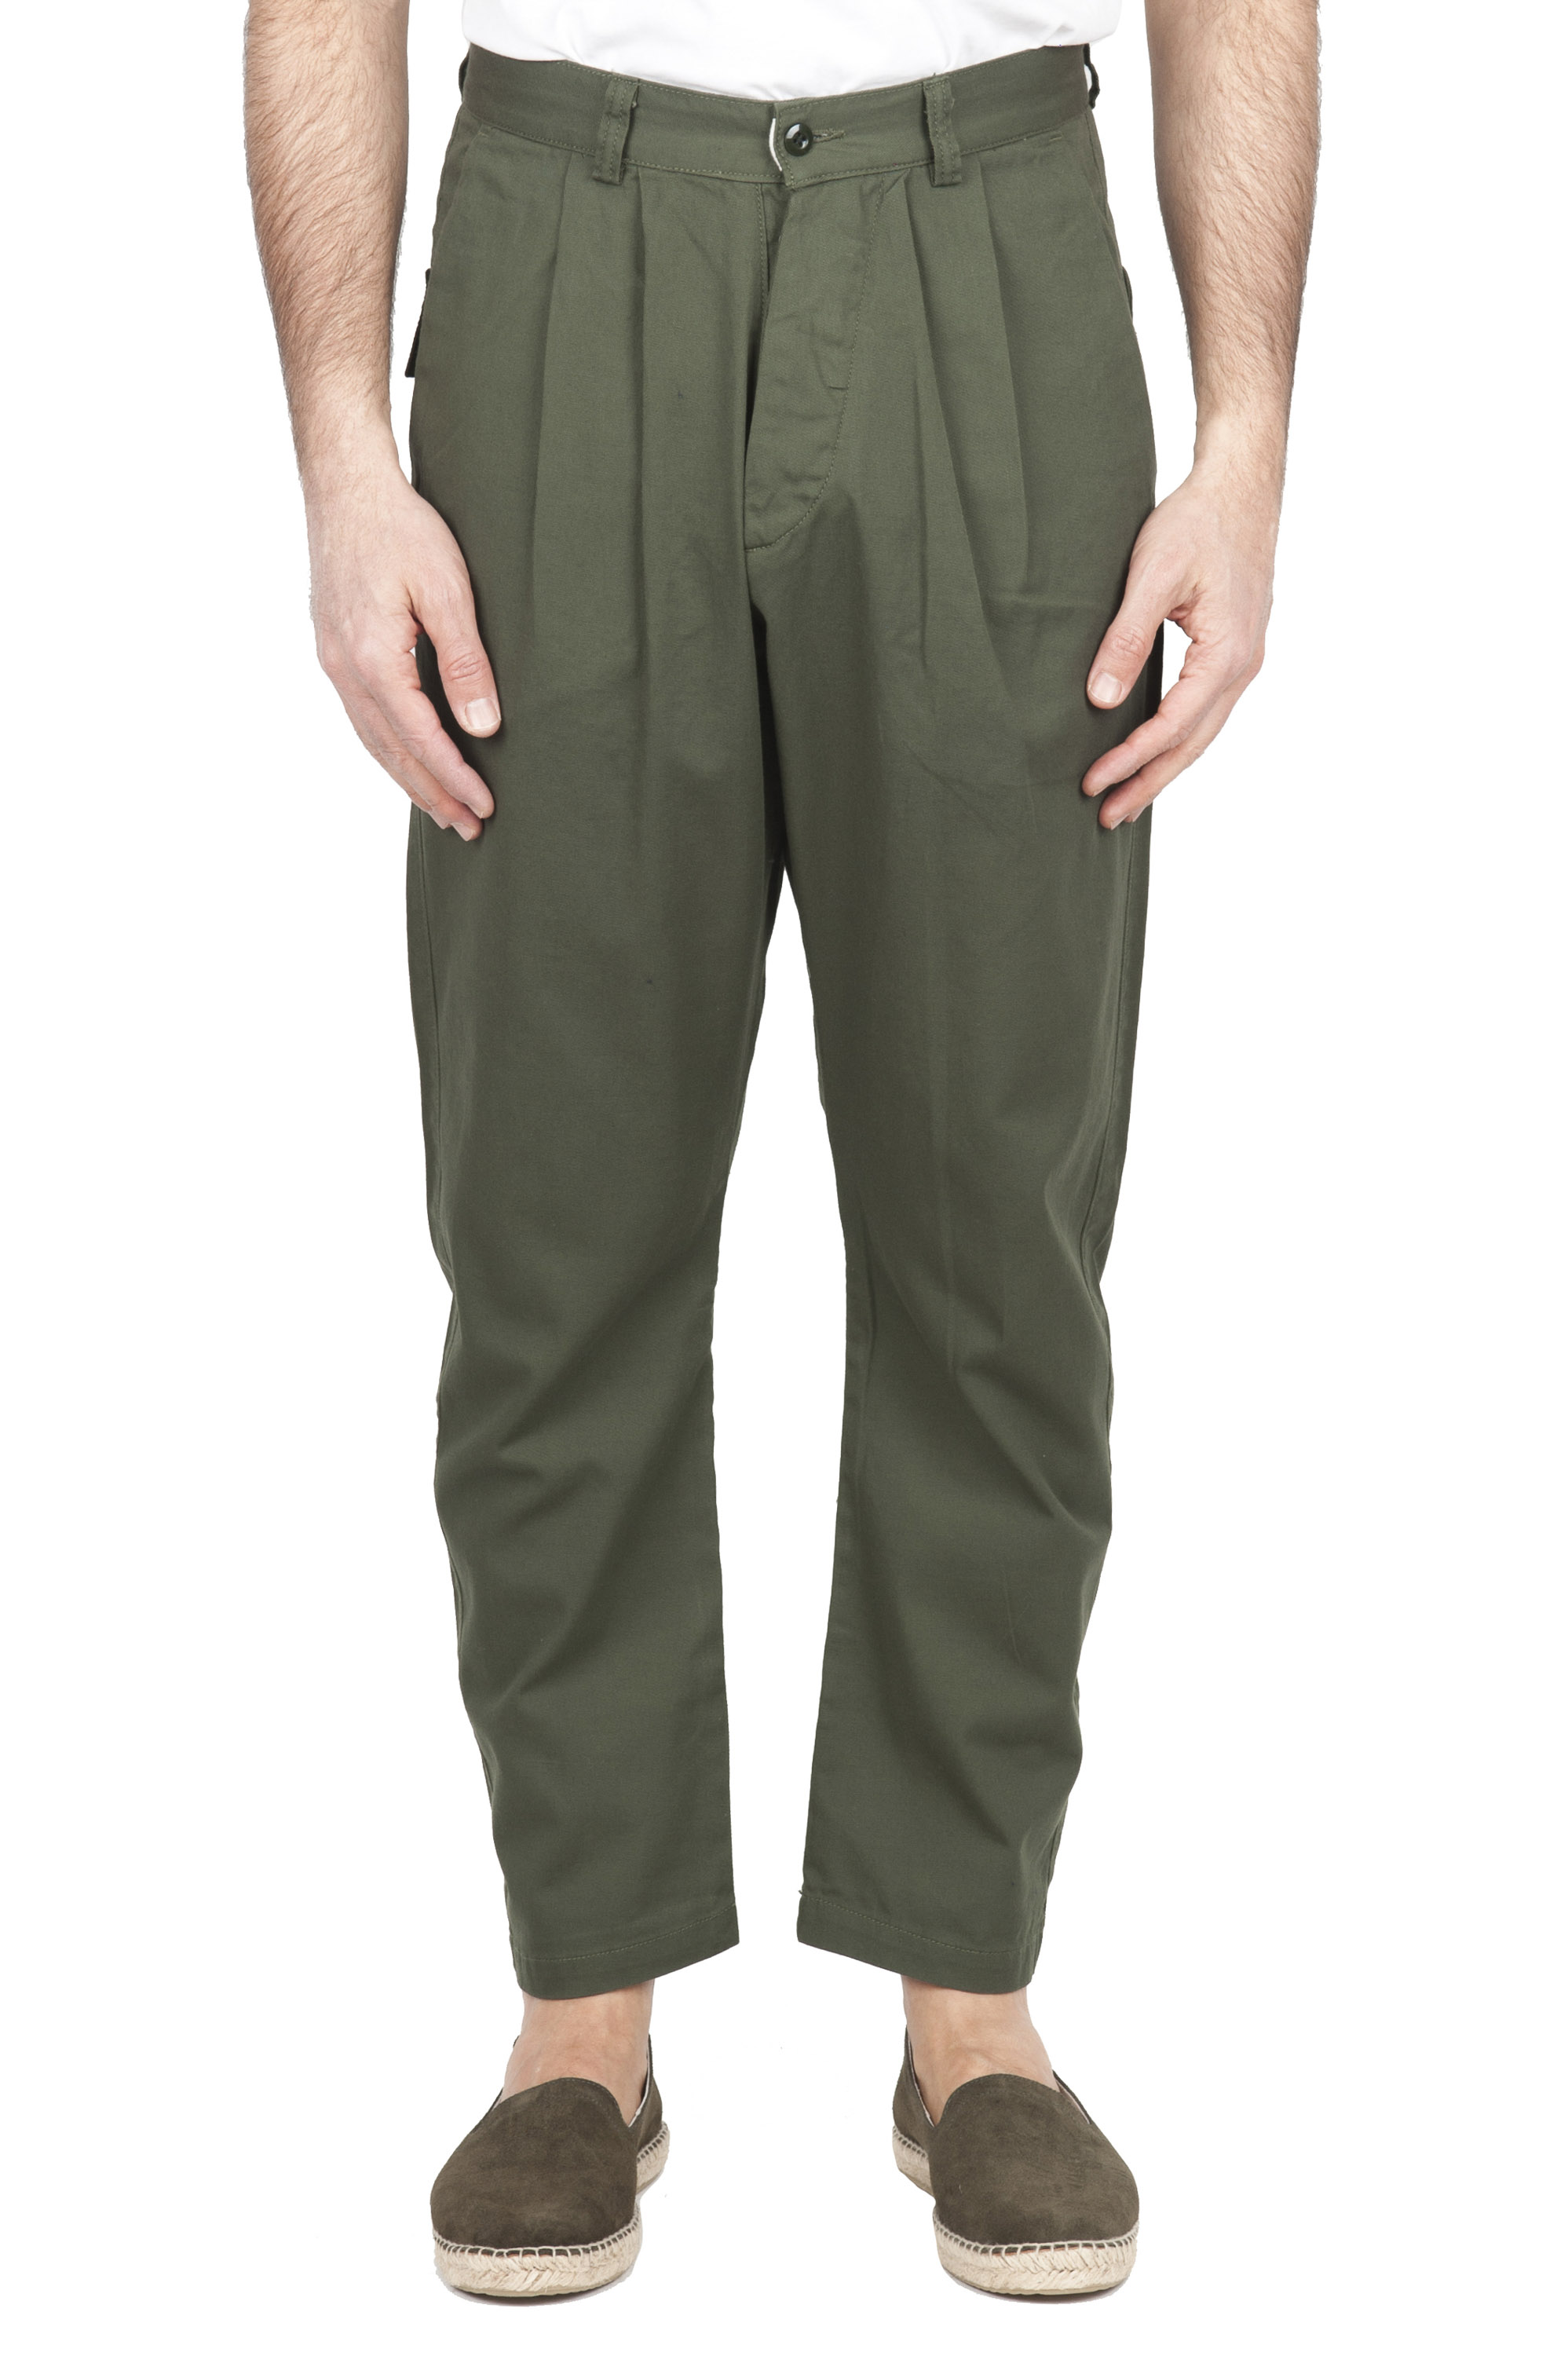 SBU Trousers Spring Summer 2021 Collection